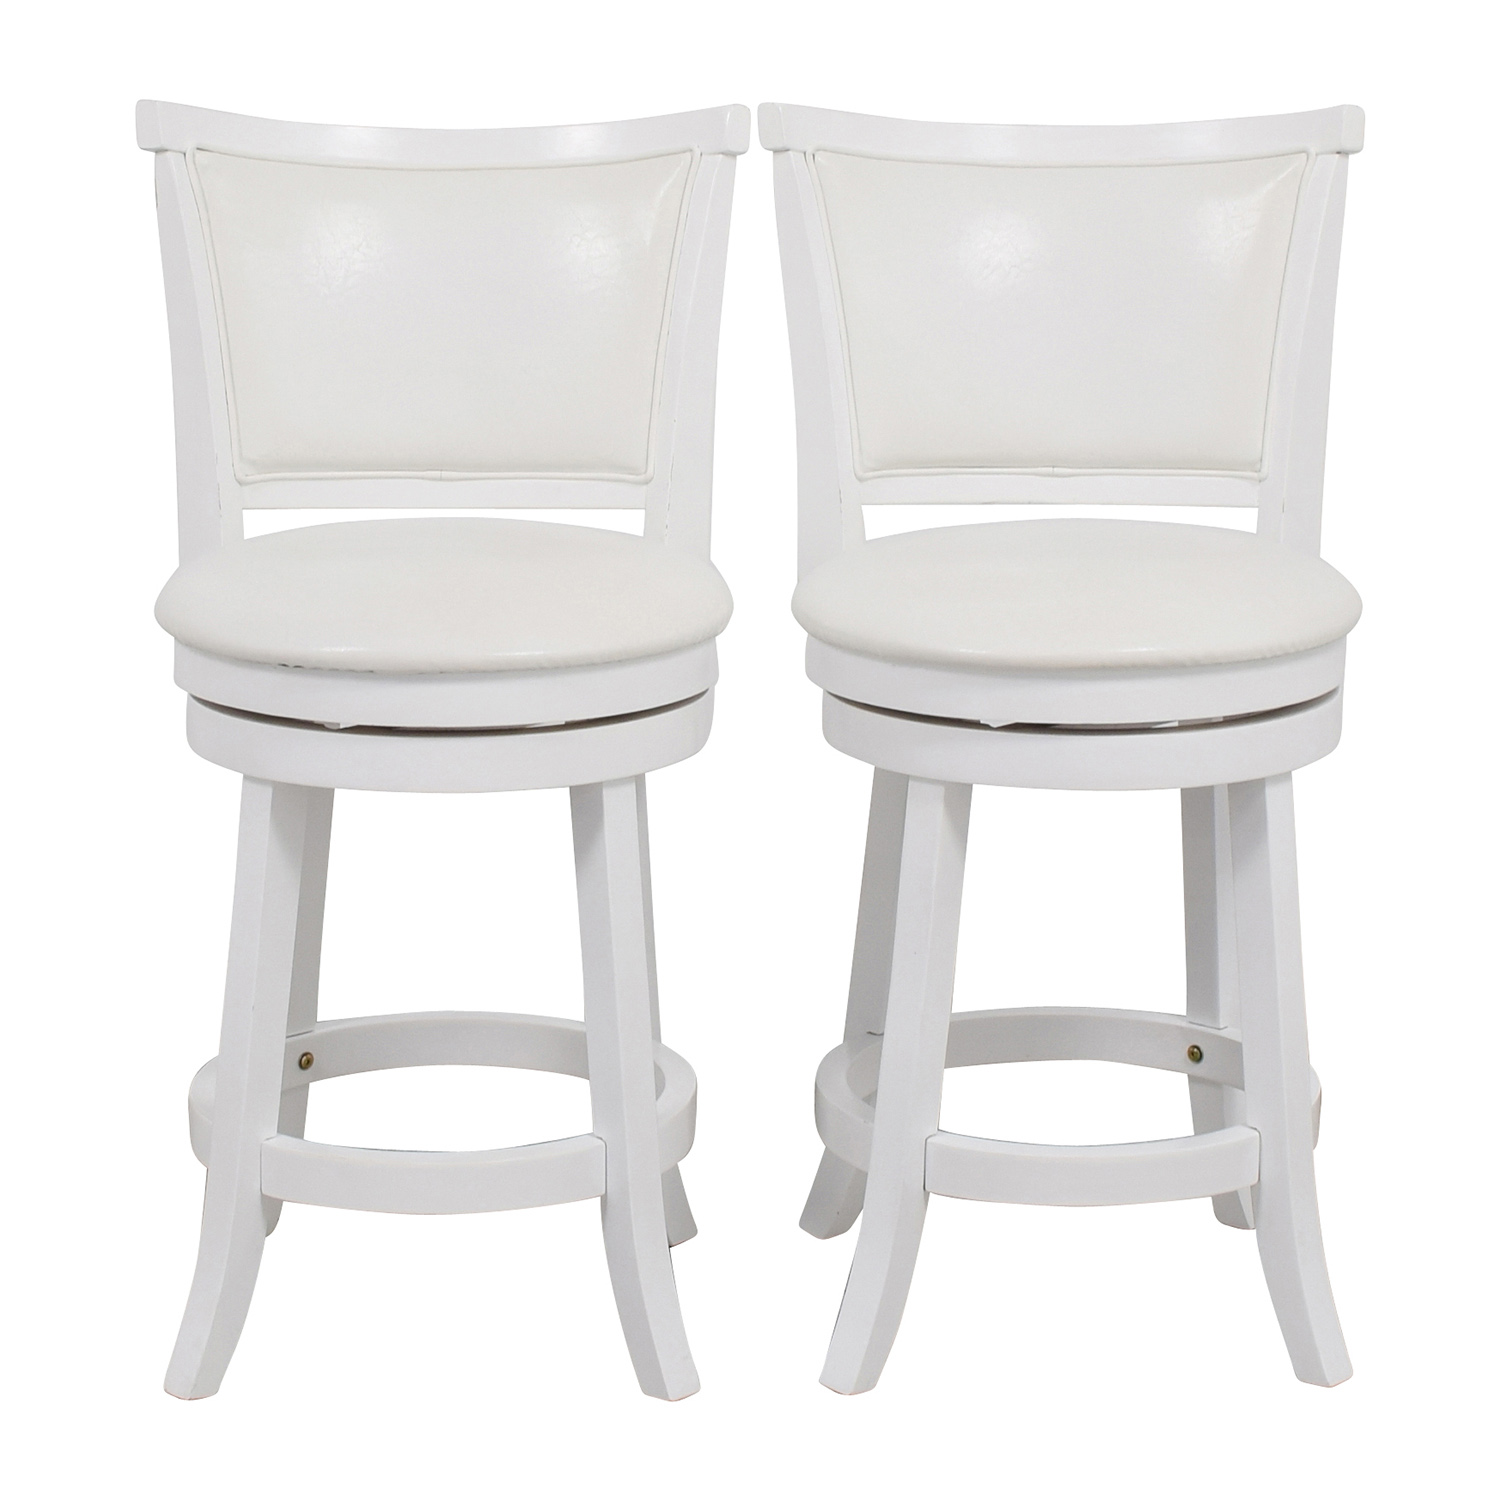 Lovely white counter height bar stools images for Counter height swivel bar stools